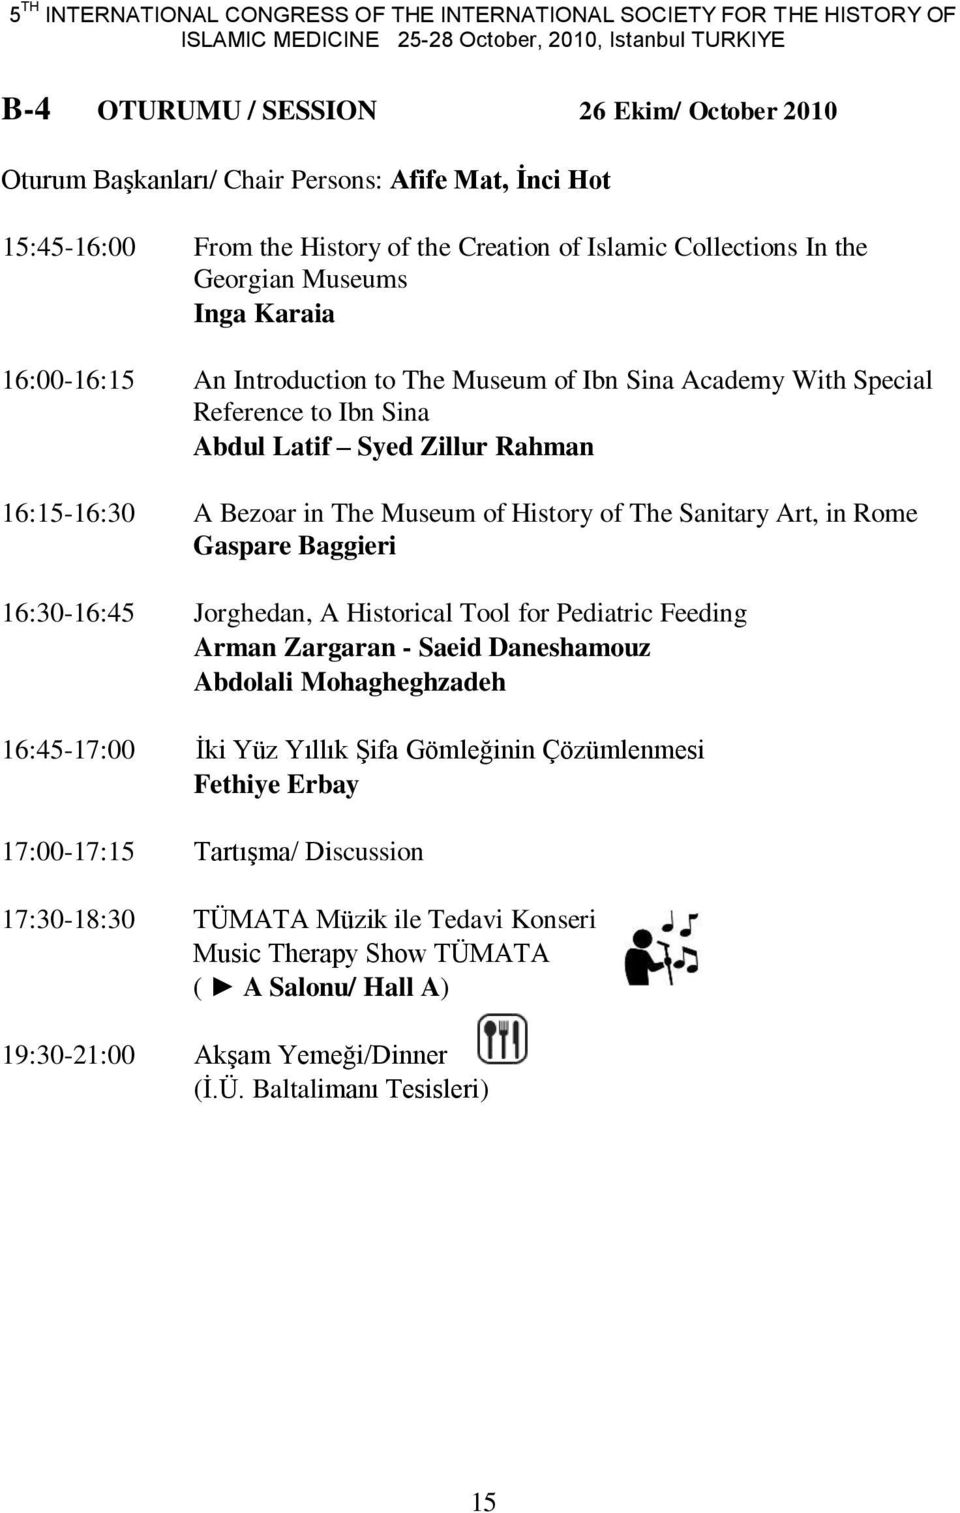 Special Reference to Ibn Sina Abdul Latif Syed Zillur Rahman 16:15-16:30 A Bezoar in The Museum of History of The Sanitary Art, in Rome Gaspare Baggieri 16:30-16:45 Jorghedan, A Historical Tool for